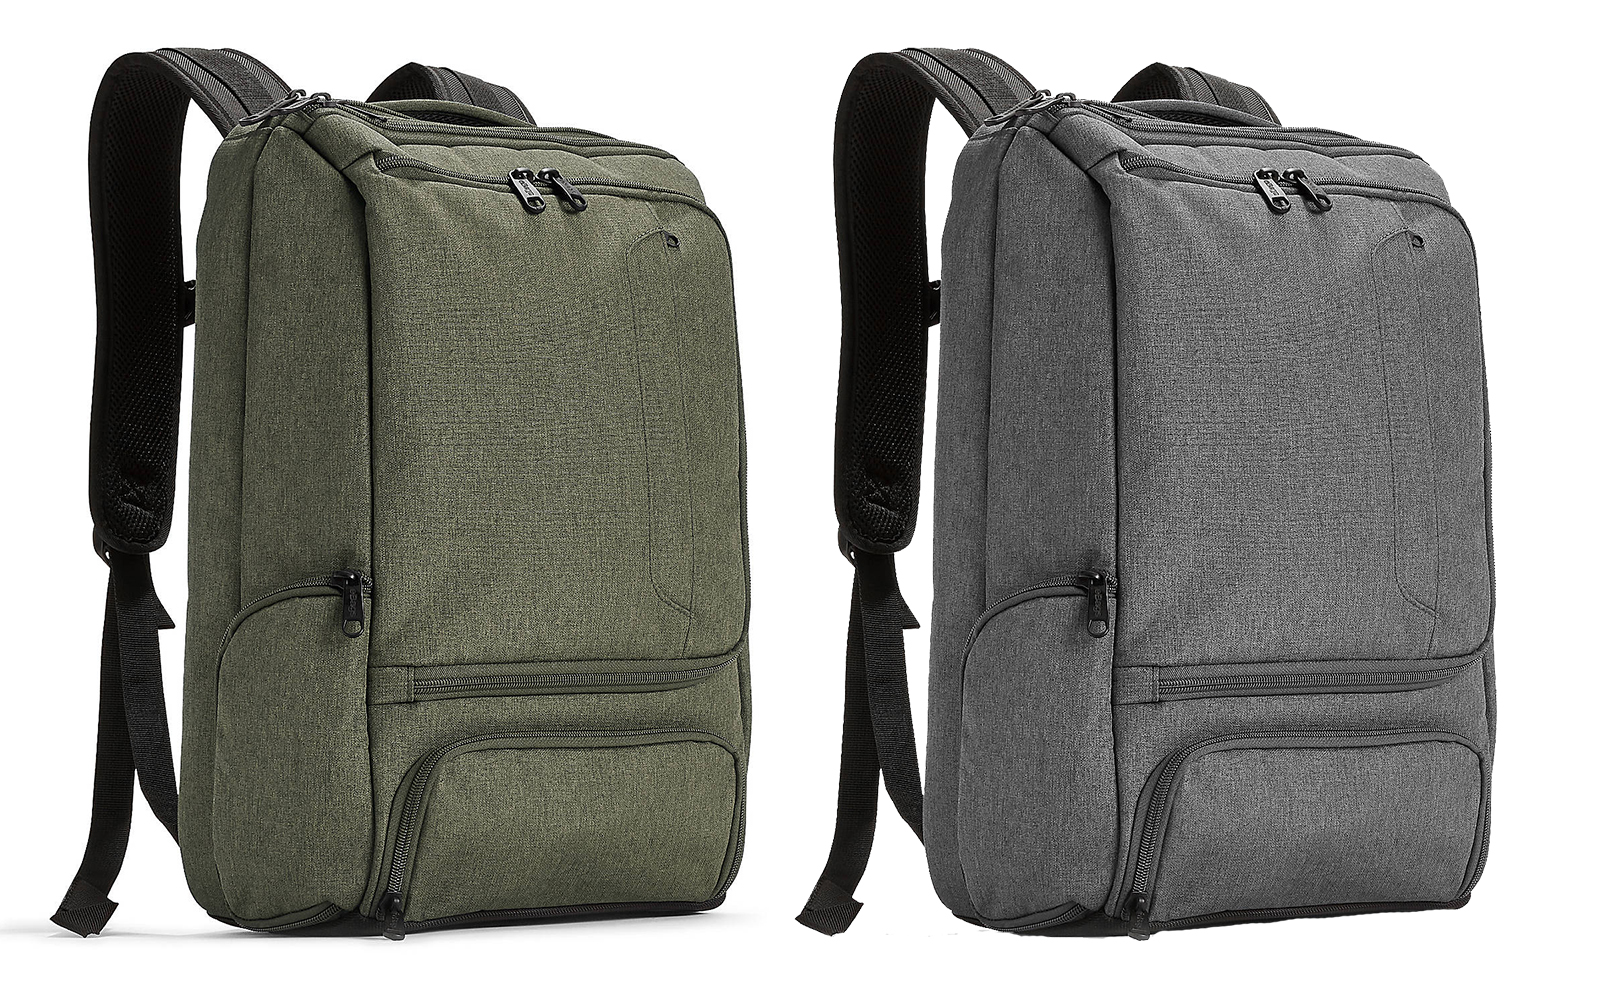 eBags Best-selling Backpack